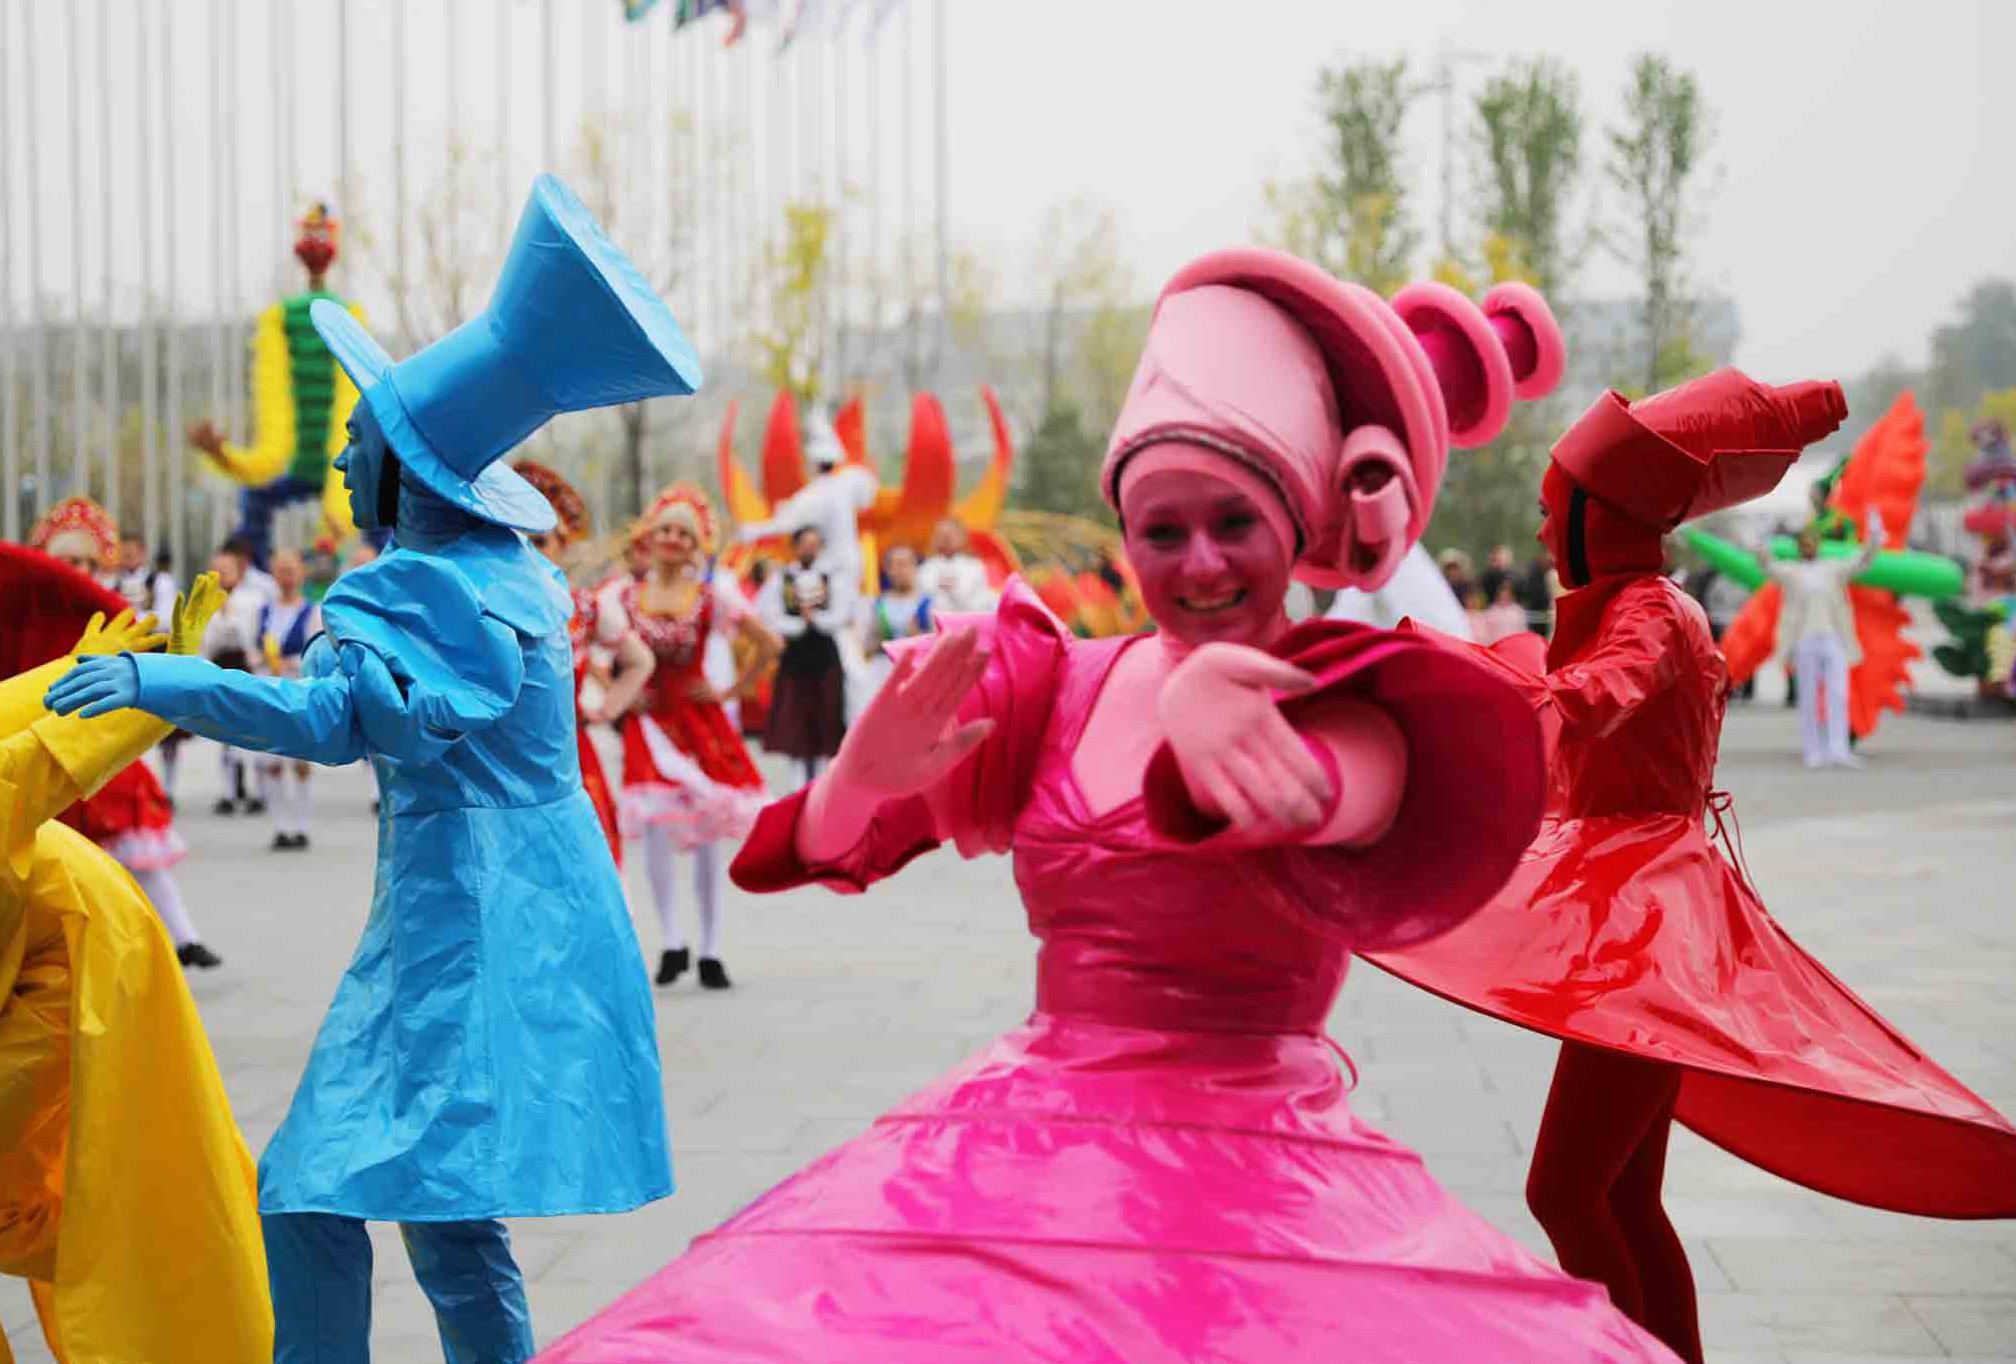 Performers dance to welcome the Beijing Horticultural Exhibition 2019